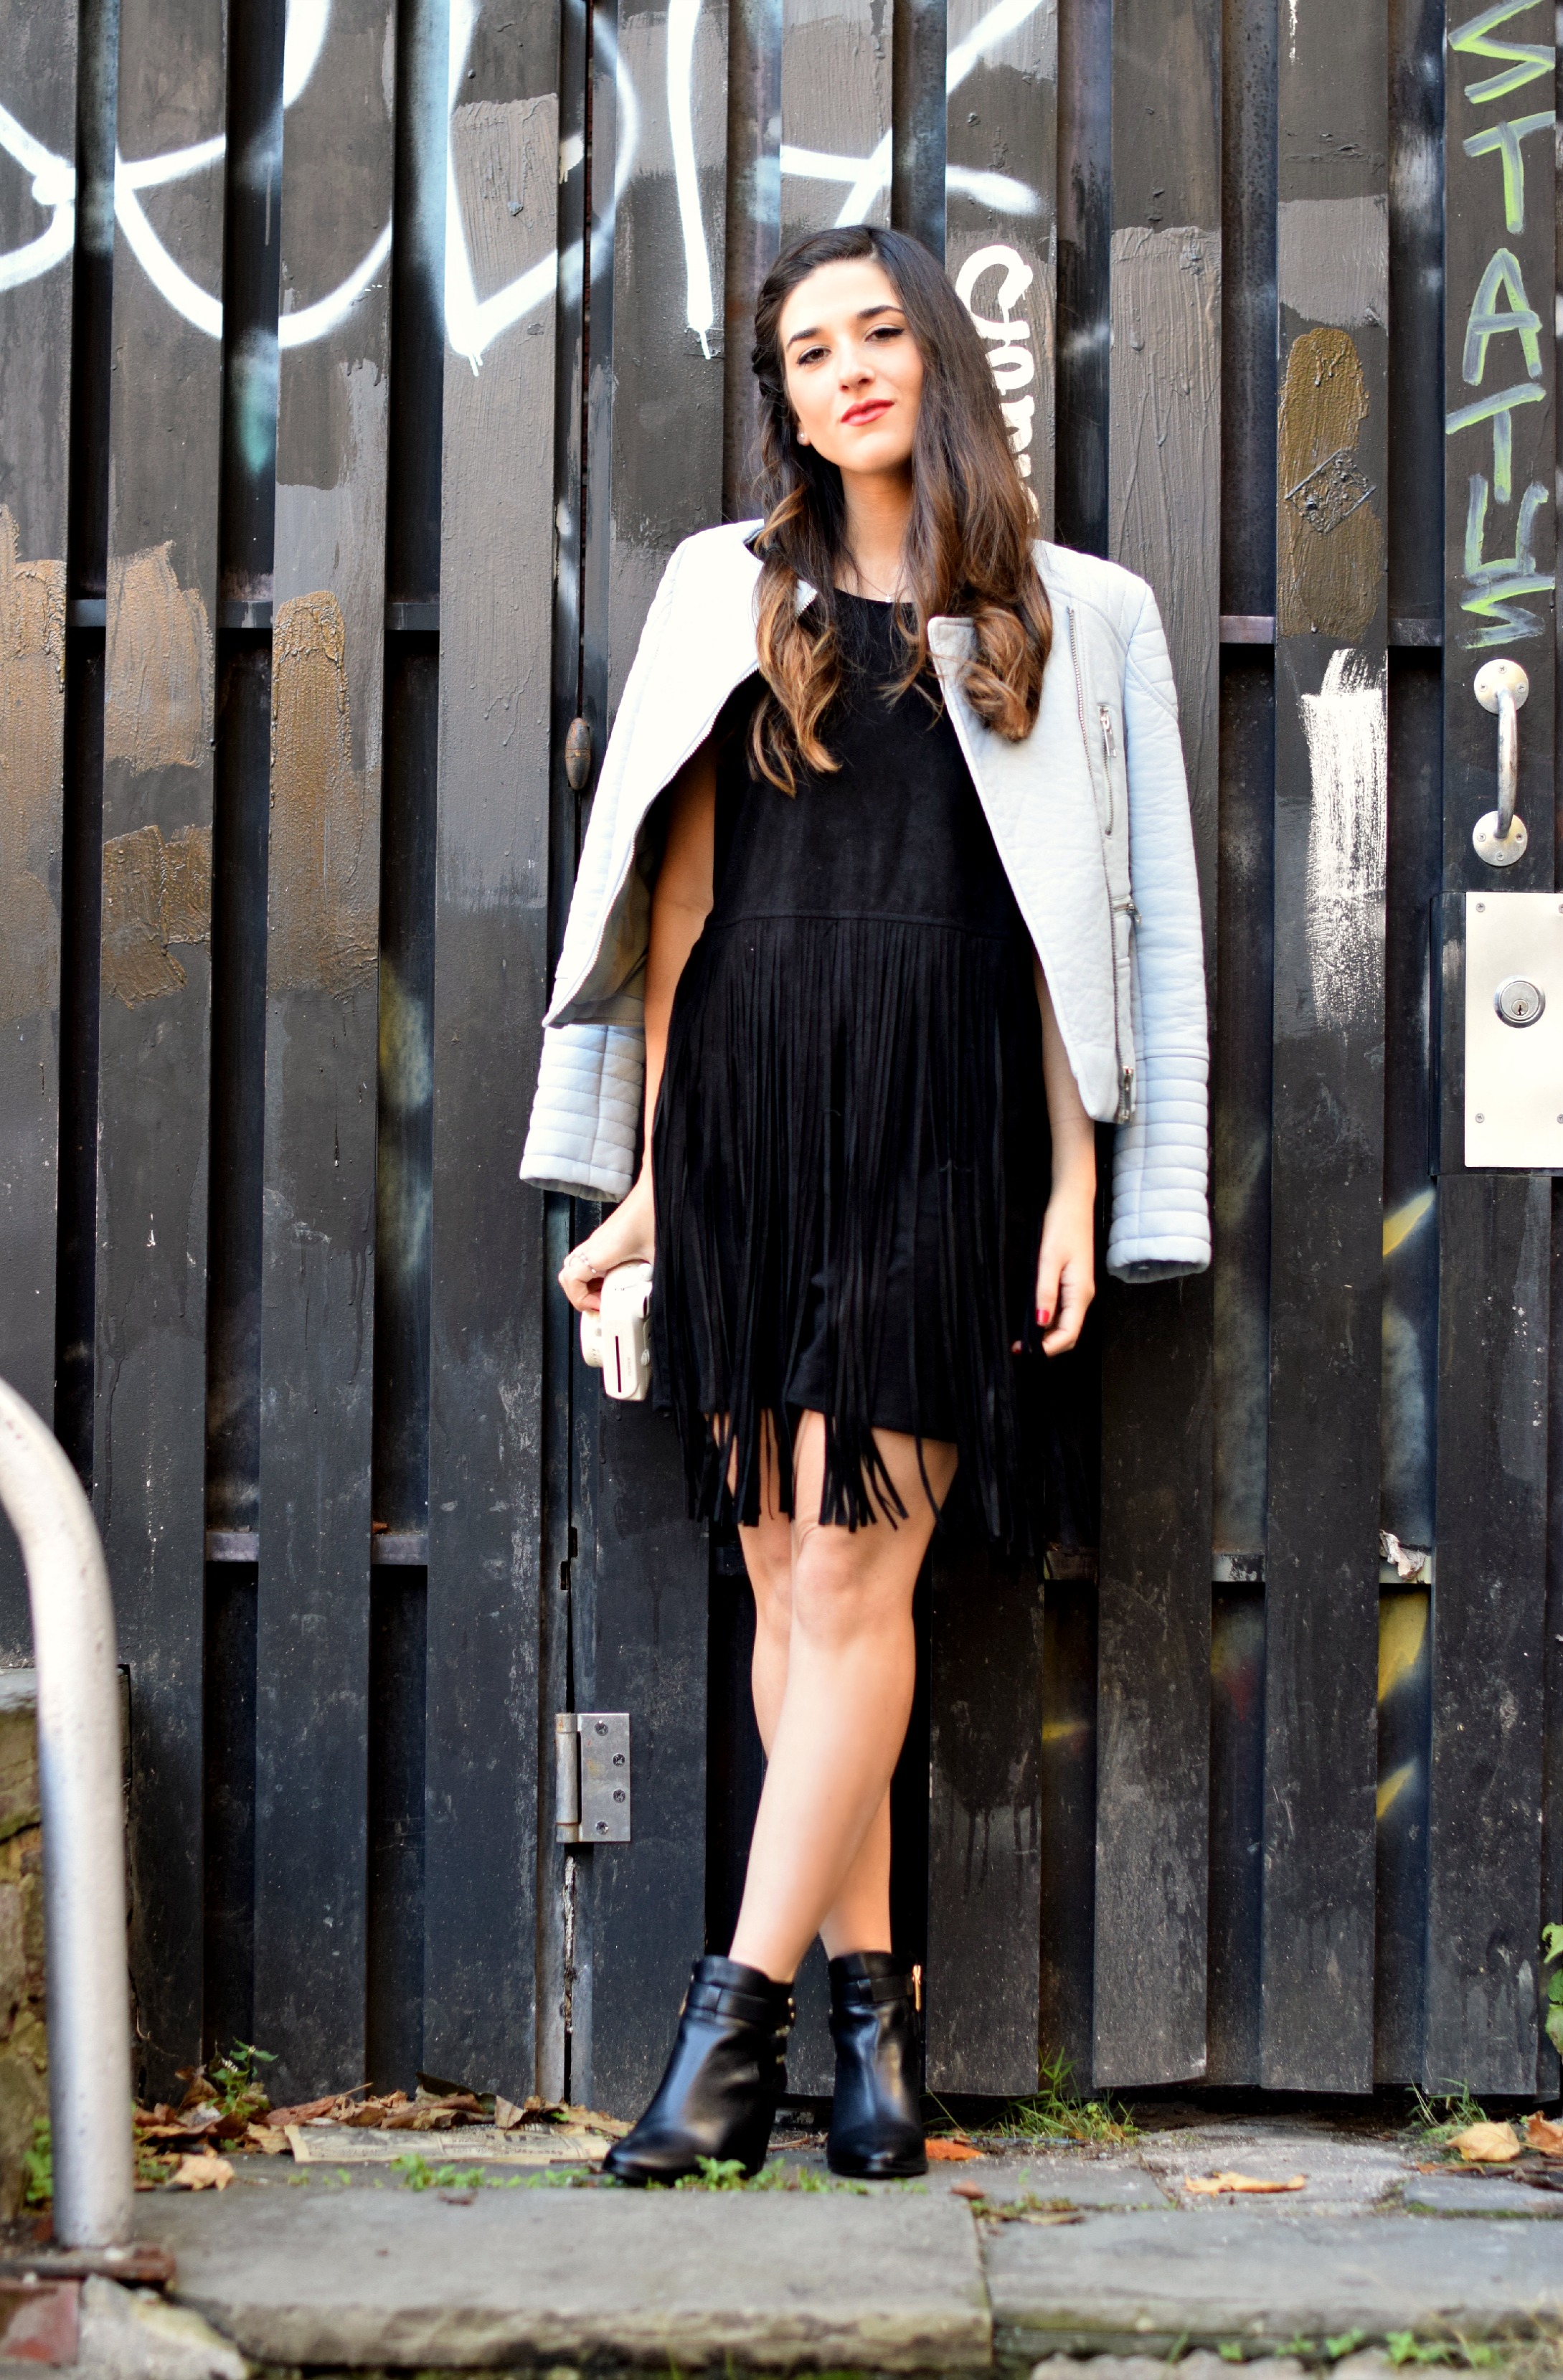 Black Fringe Dress Trèscool Louboutins & Love Fashion Blog Esther Santer NYC Street Style Blogger Baby Blue Leather Jacket Zara Hair Girl Model Photoshoot Booties Nordstrom Outfit OOTD Red Nail Polish Pretty Trendy Shoes Winter Fall Look  Shop Inspo.jpg